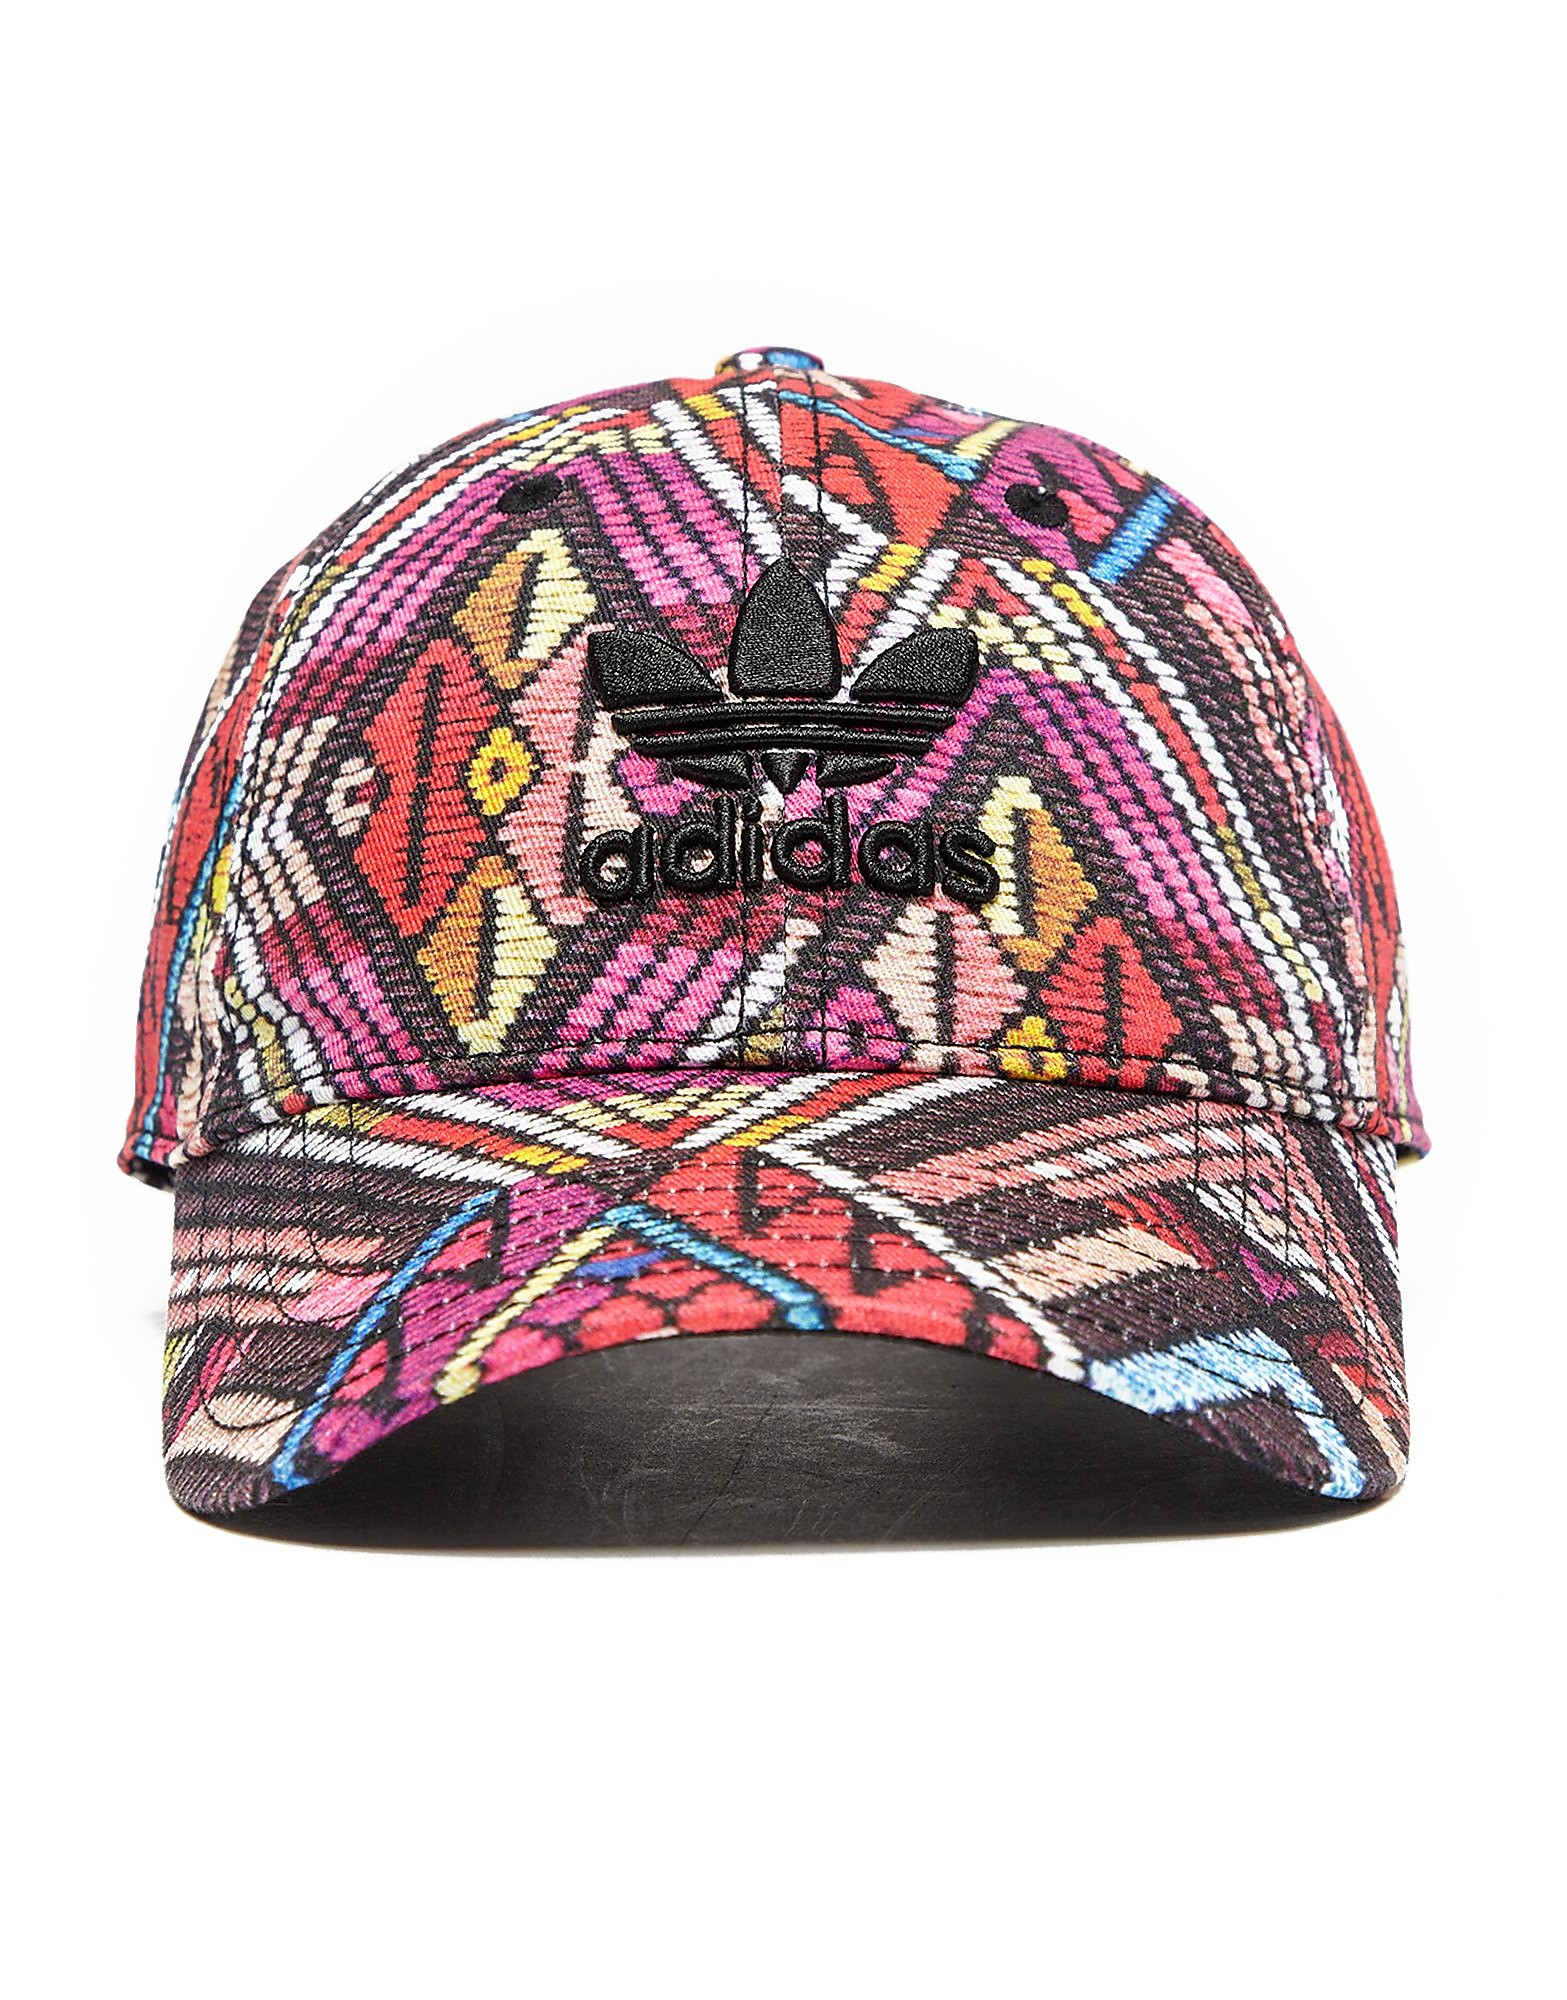 adidas Originals gorra Farm